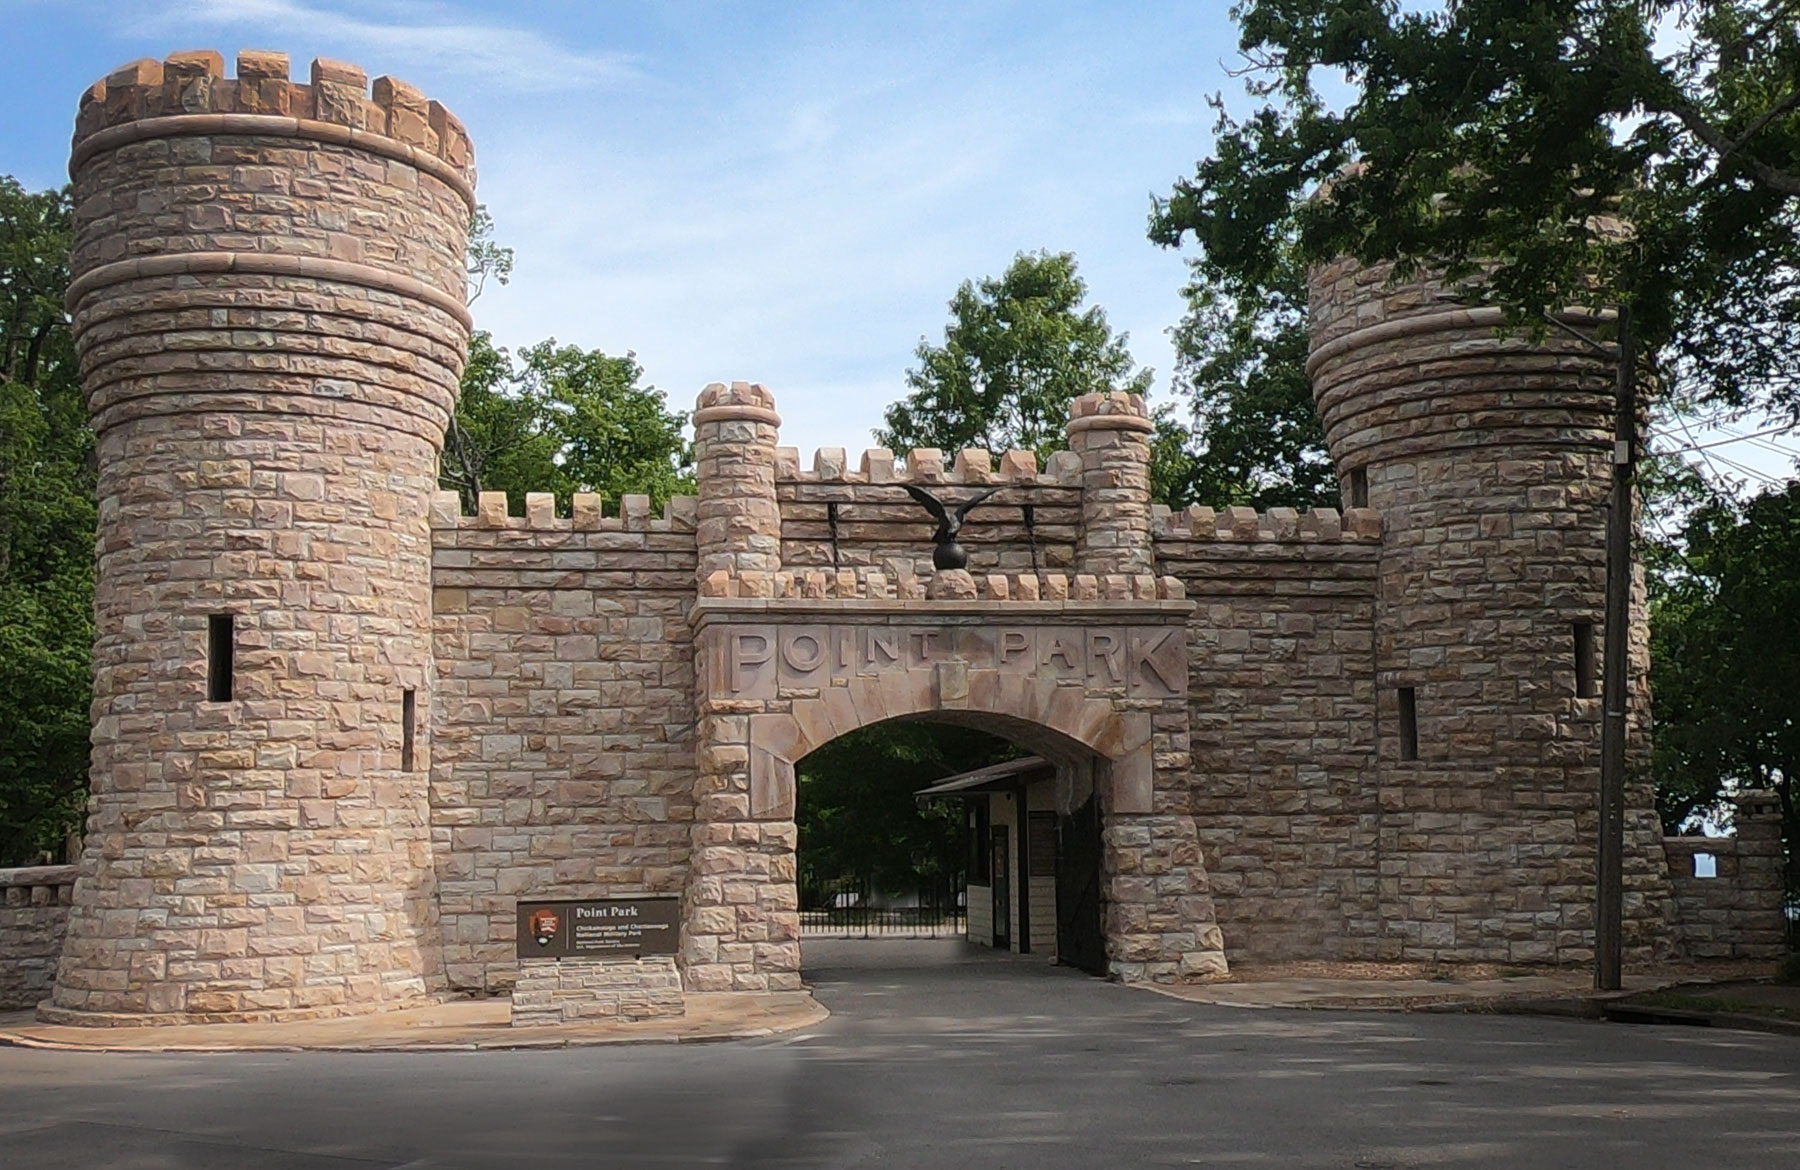 Point Park castle gate at Lookout Mountain, Tennessee